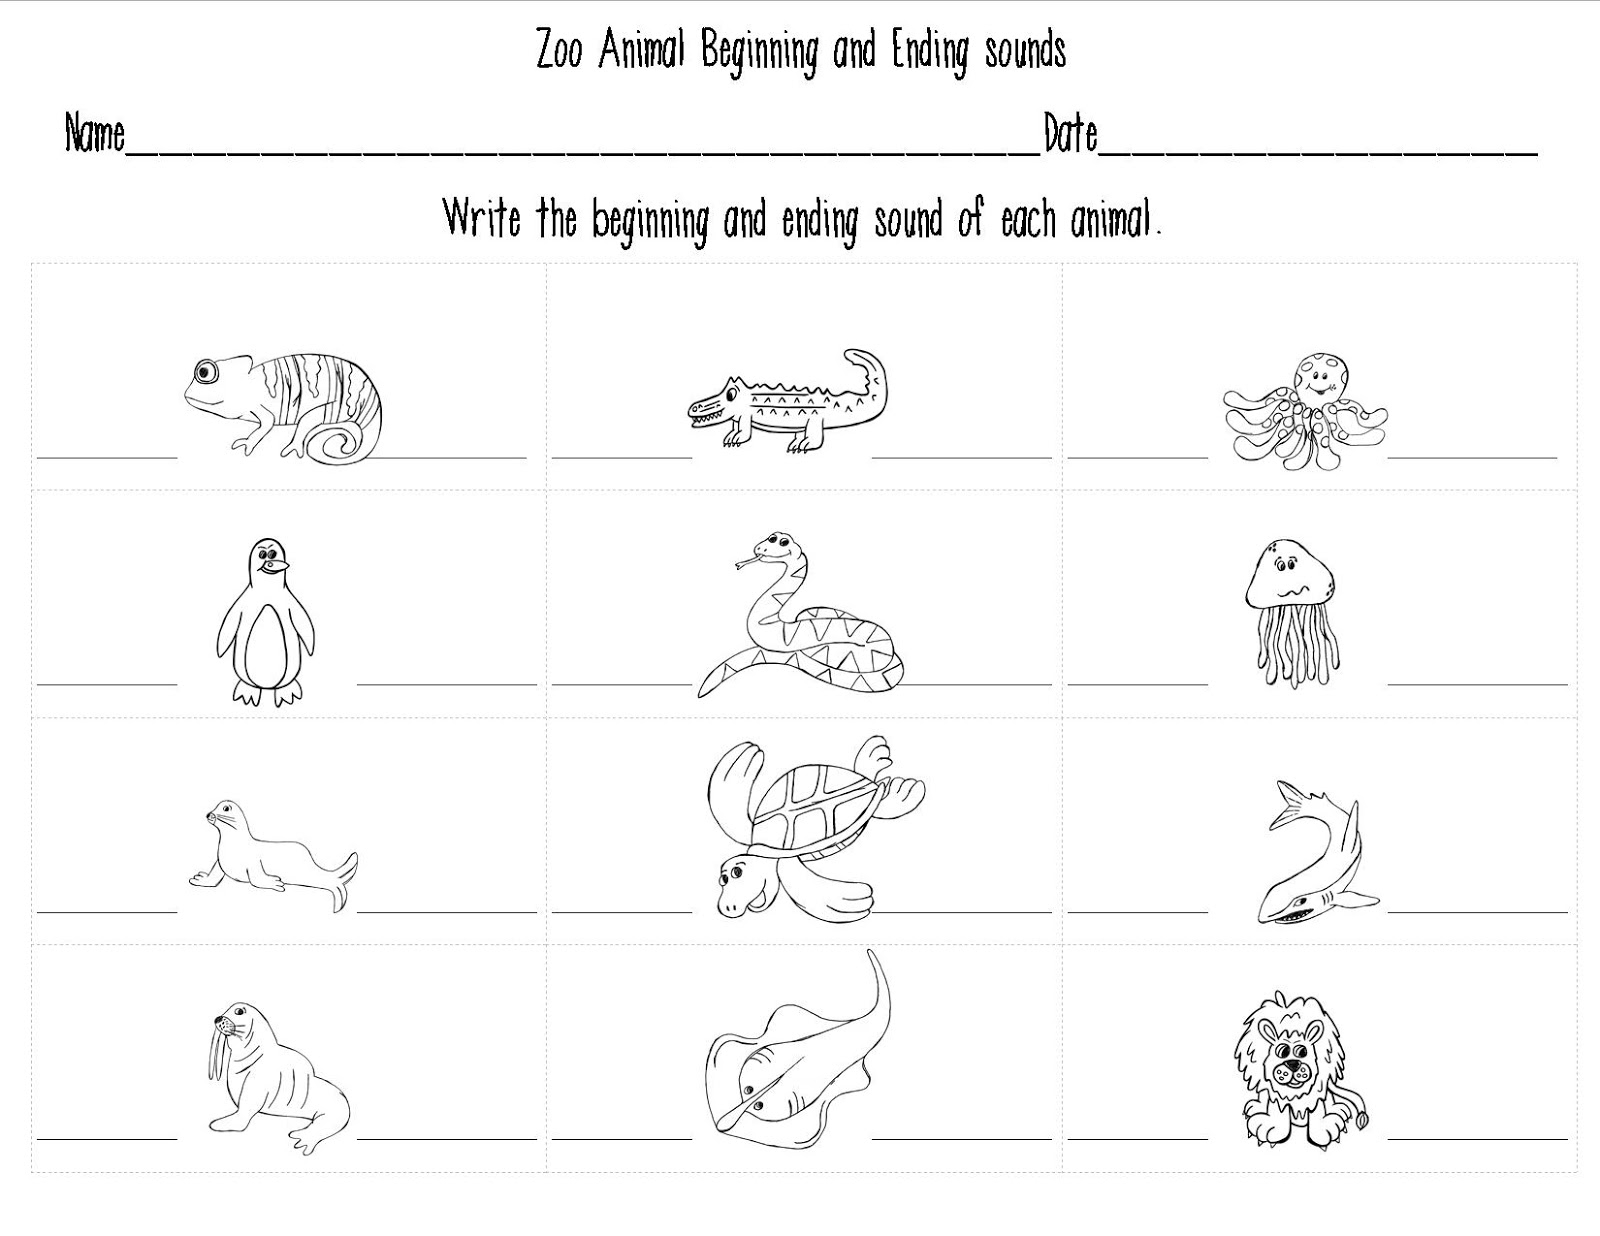 Printables Zoo Phonics Worksheets collection of zoo phonics worksheets bloggakuten animal for kindergarten animals and